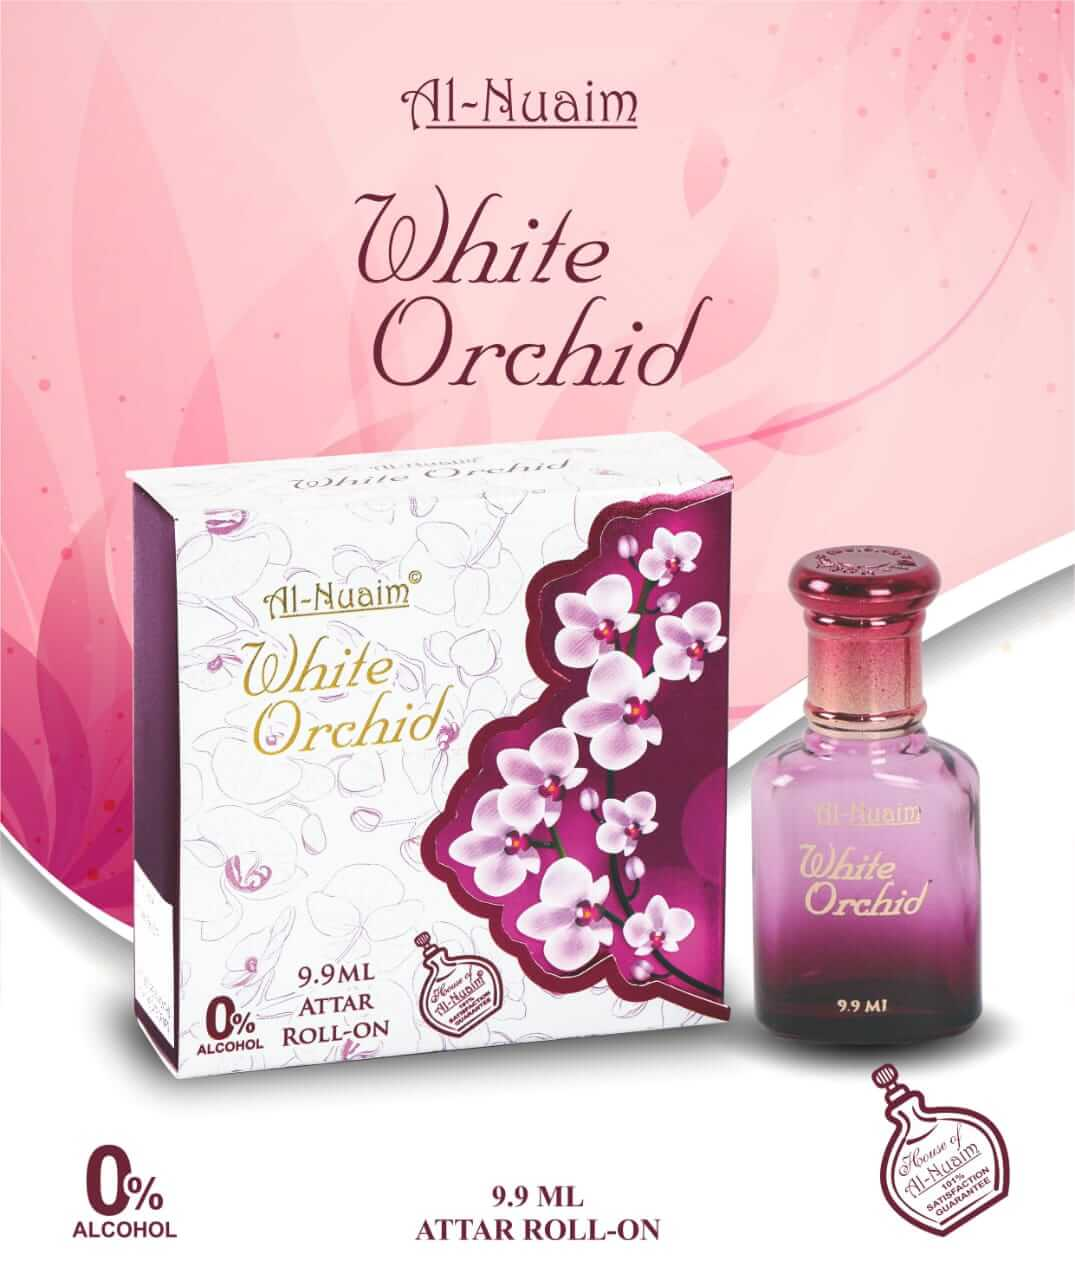 Al Nuaim White Orchid Attar 9.9ML